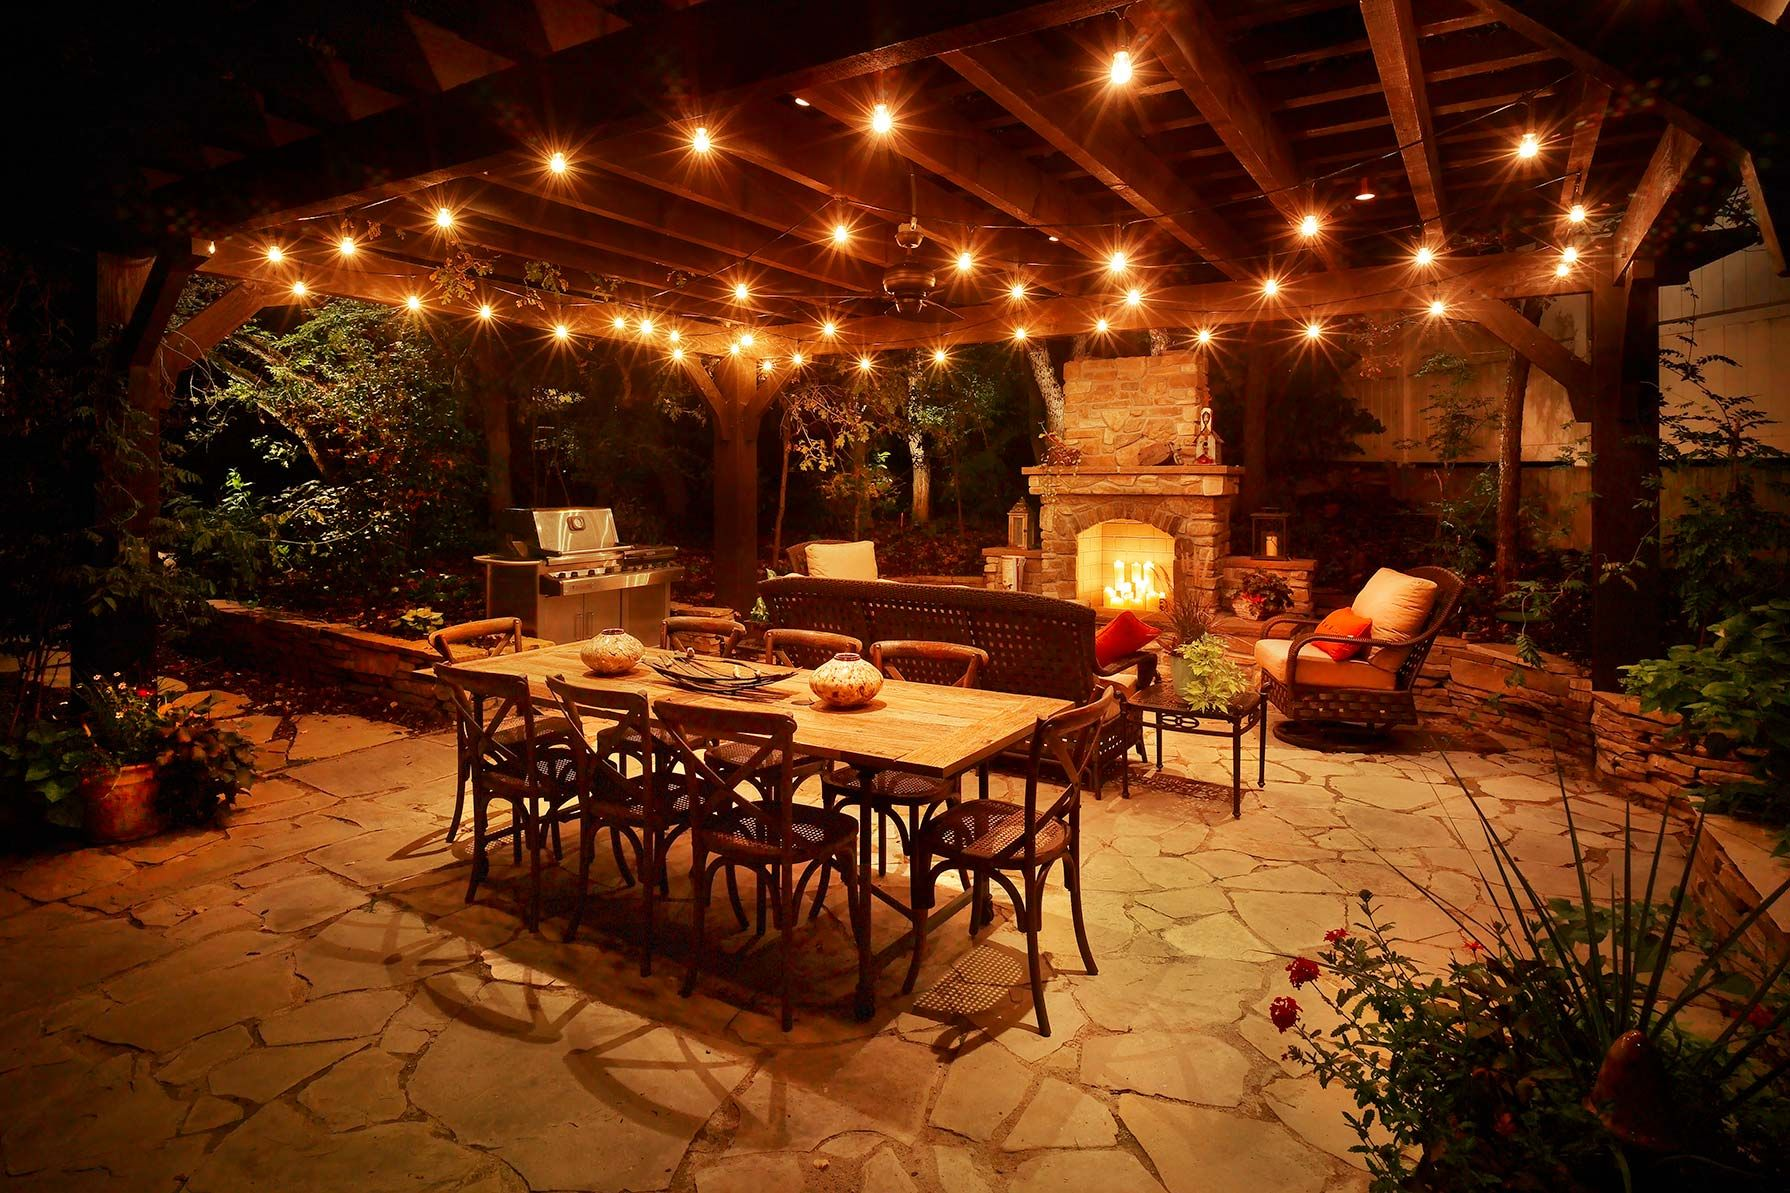 Patio Lights Festoon Lighting Composed With Down Lighting And - Lighting for patio